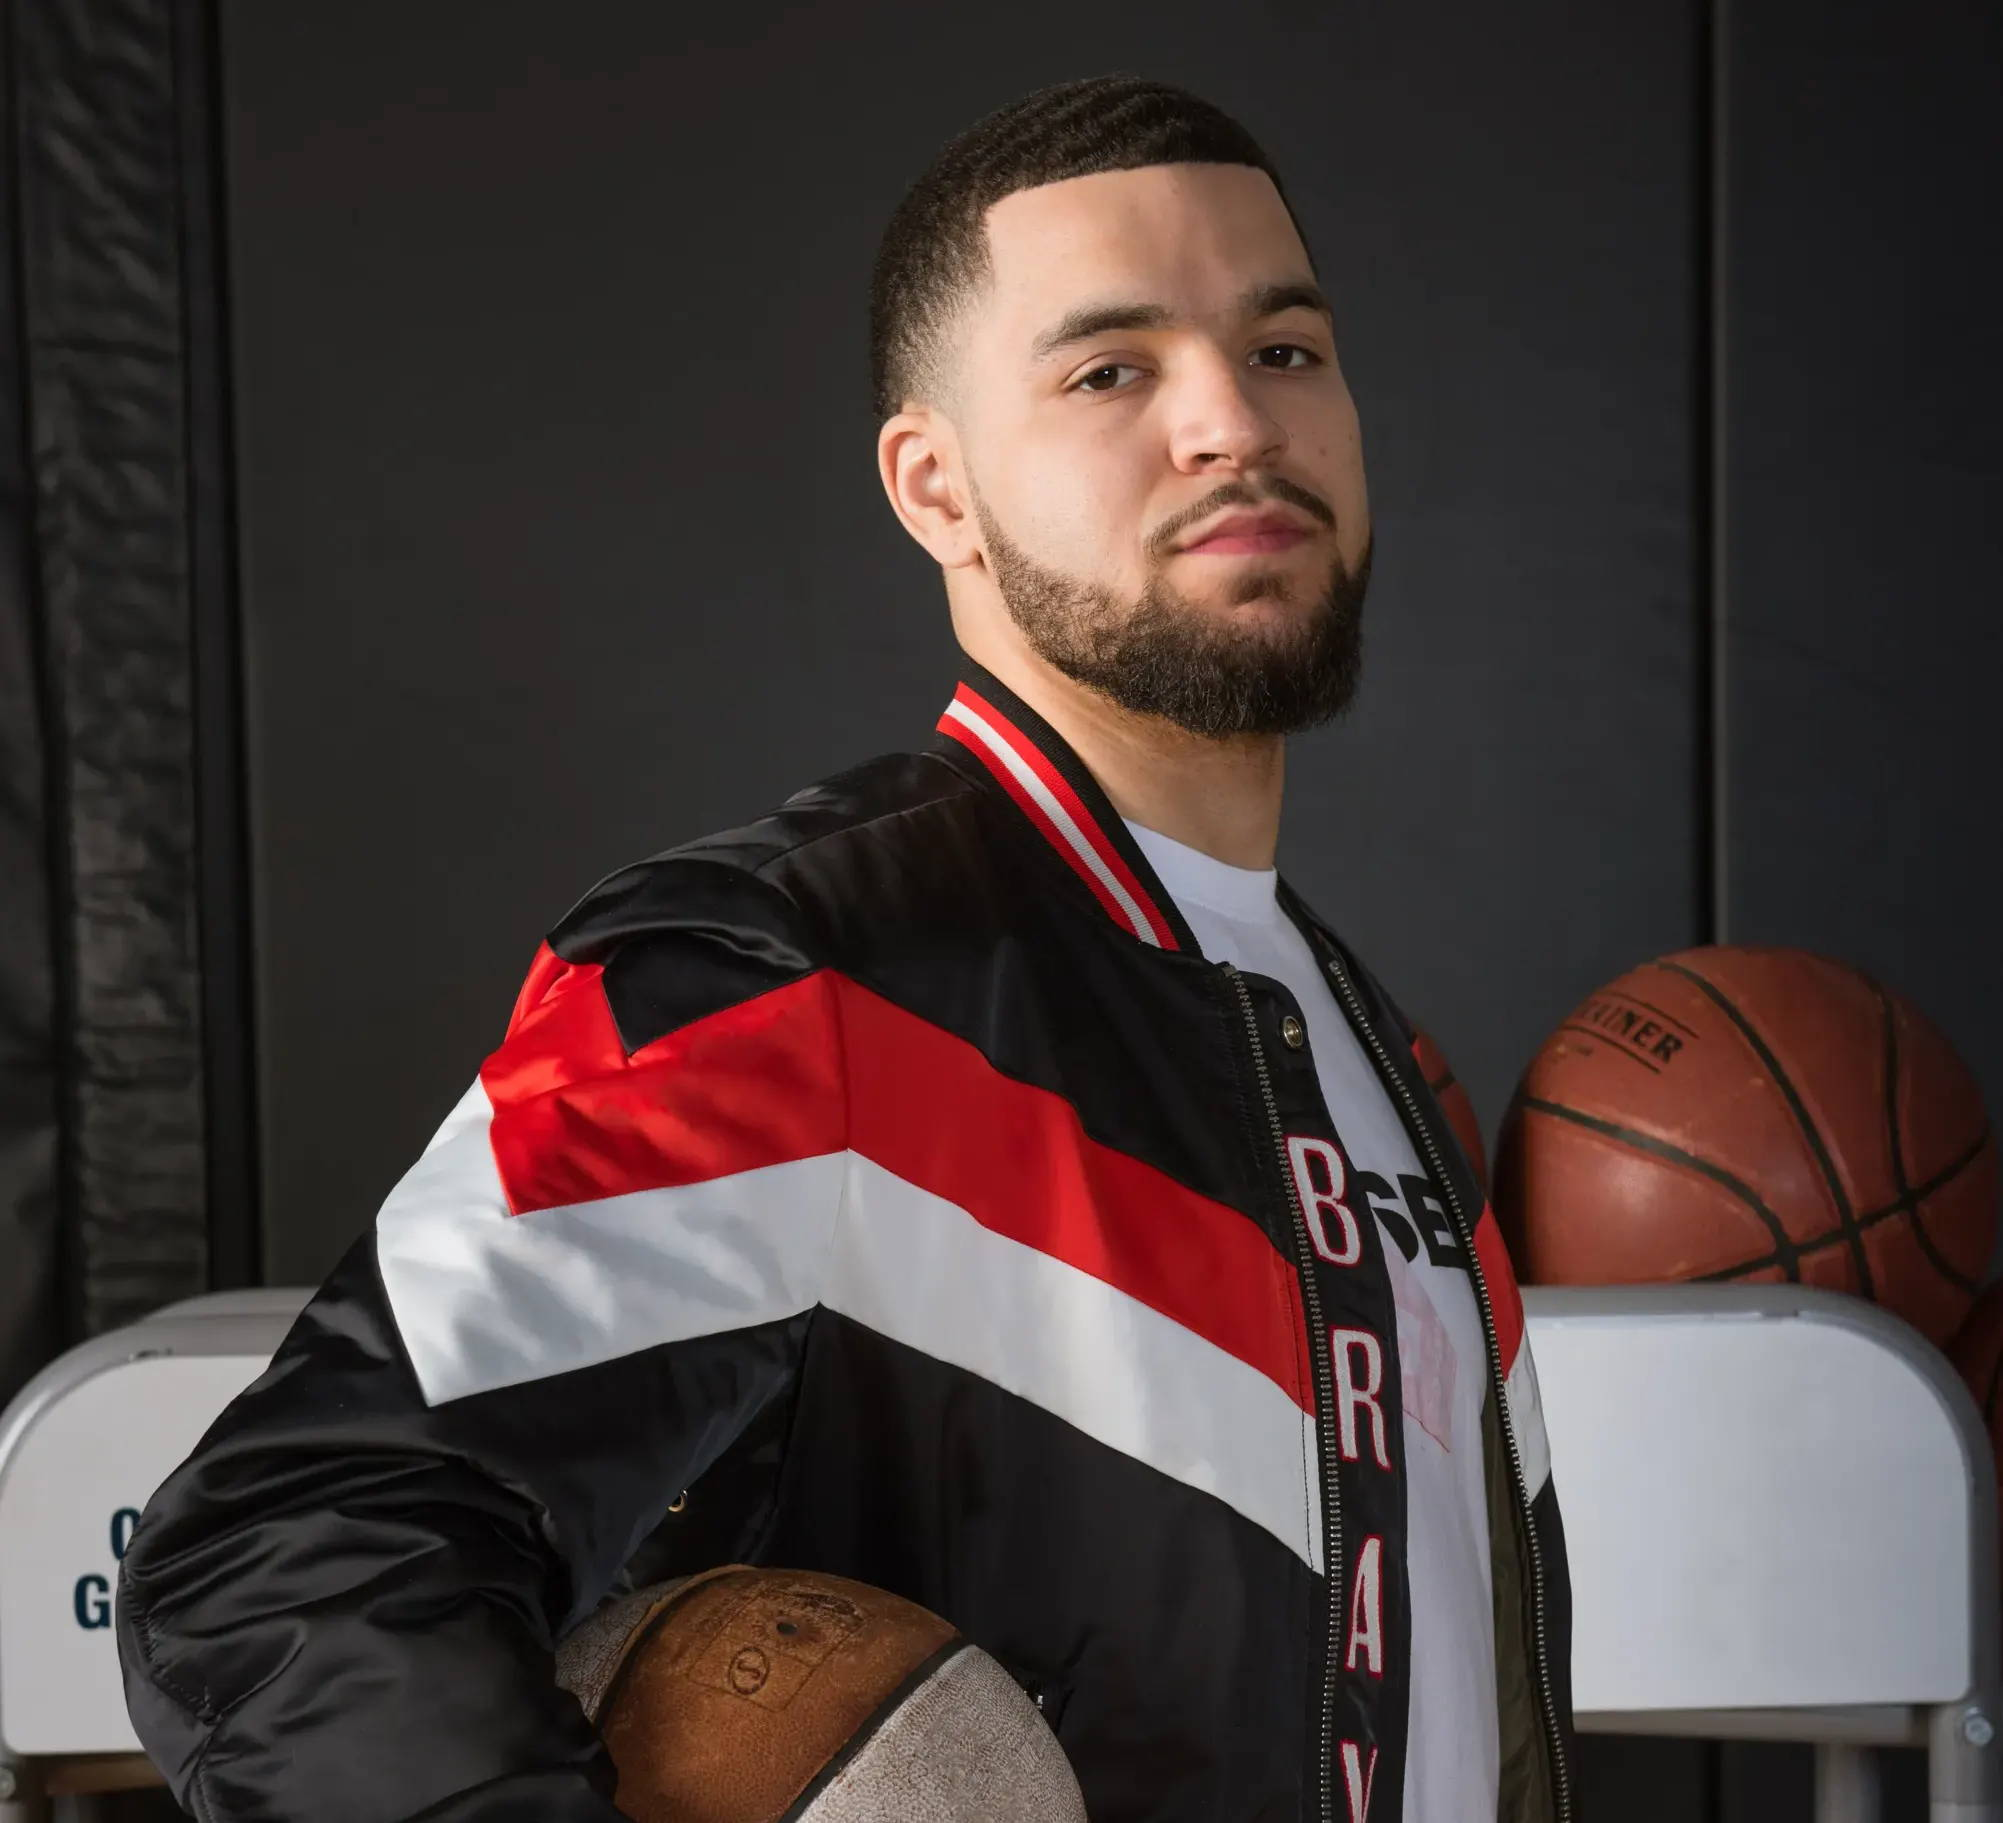 Fred Vanvleet of the Toronto Raptors, New AND1 ambassador, set to rock the Attack 2.0s for AND1